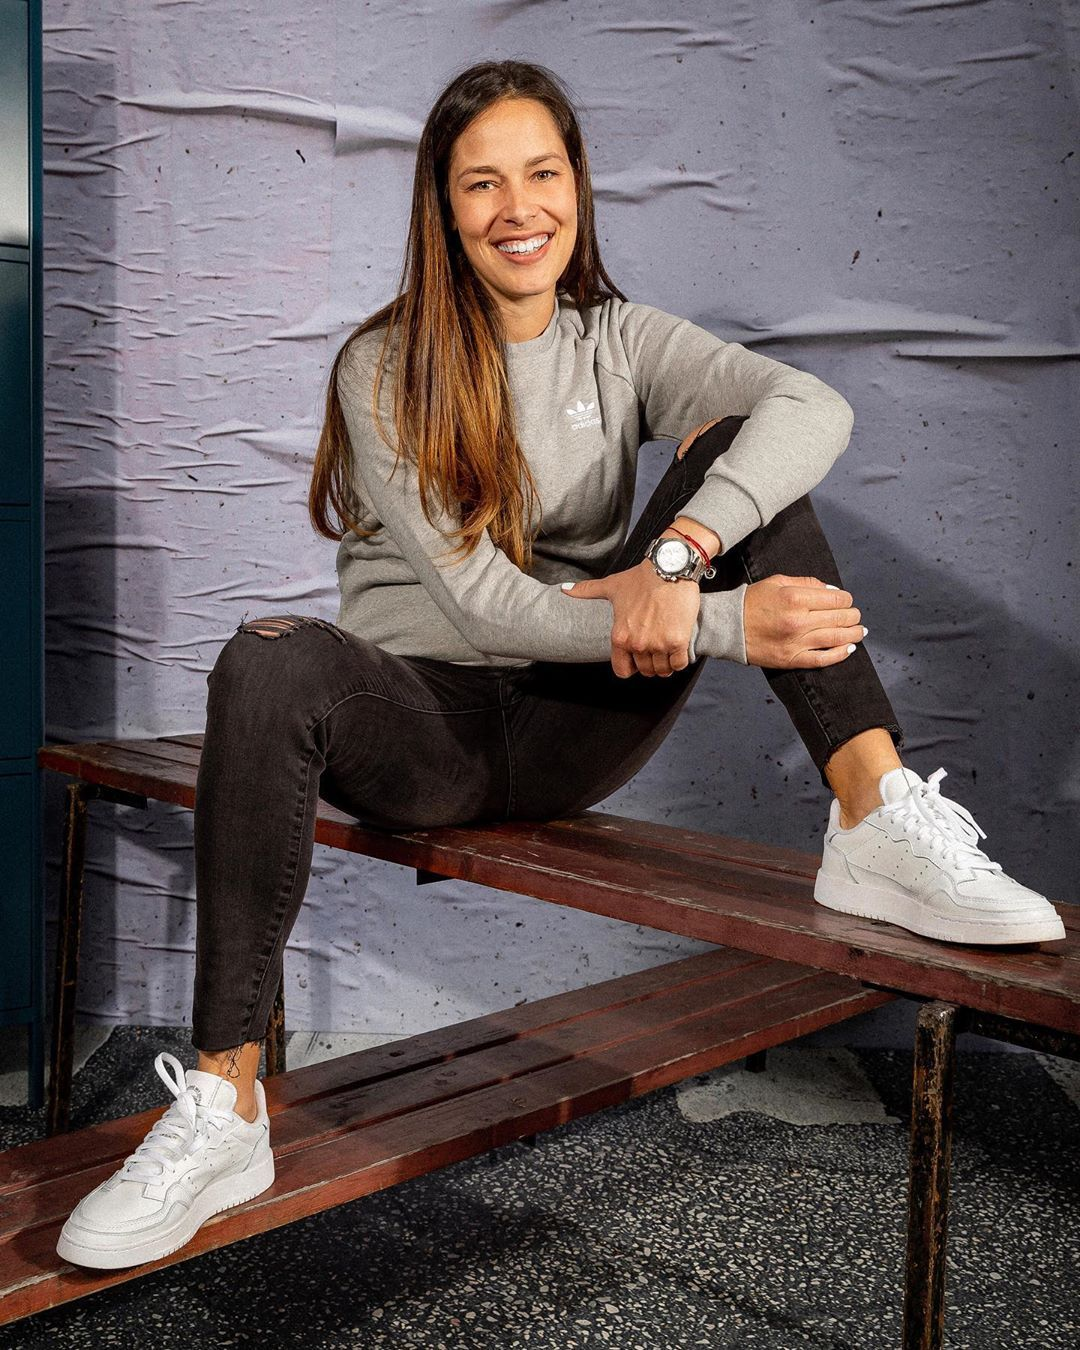 Ana Ivanovic on Instagram: Cant wait to get a little